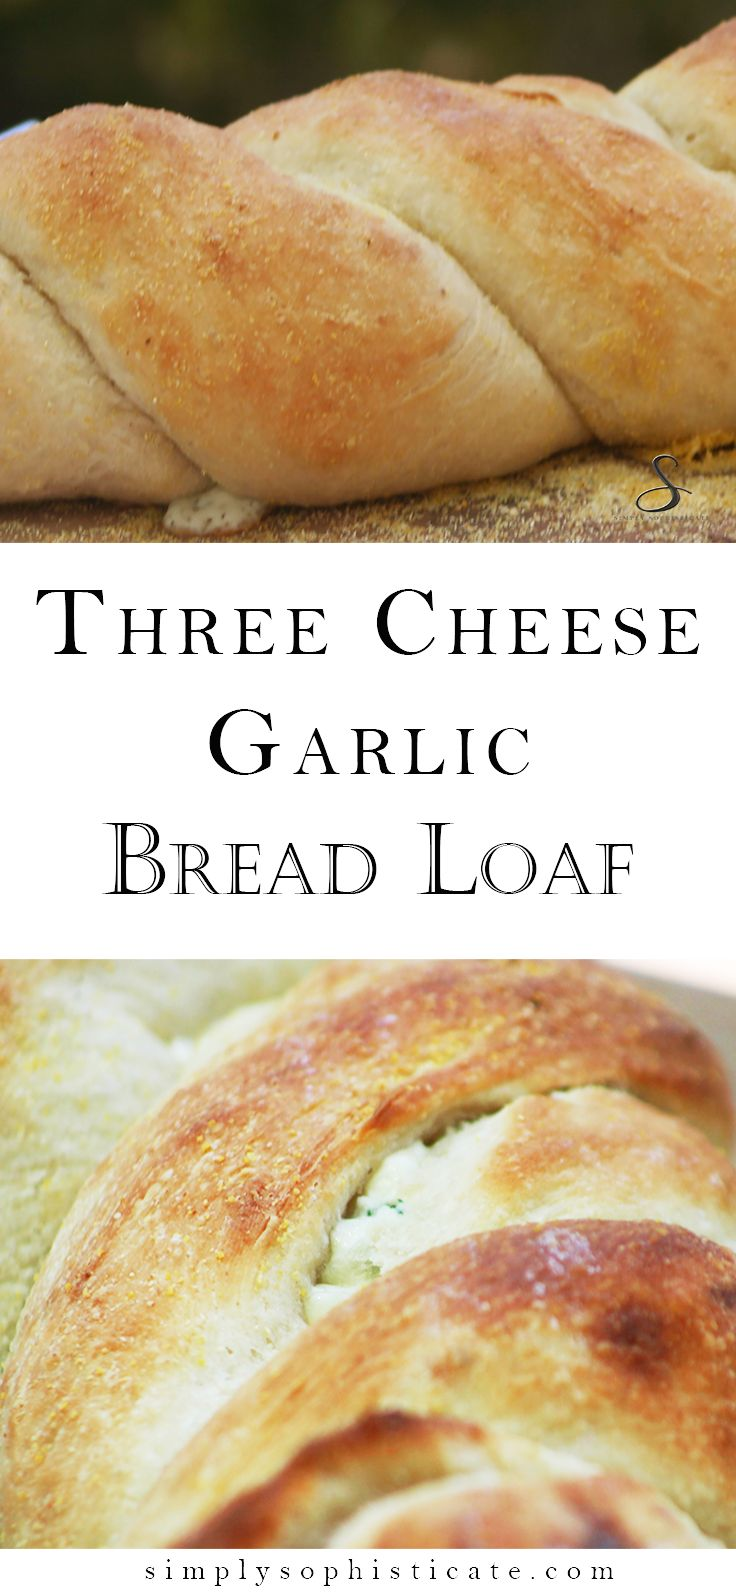 Three Cheese Garlic Bread Loaf